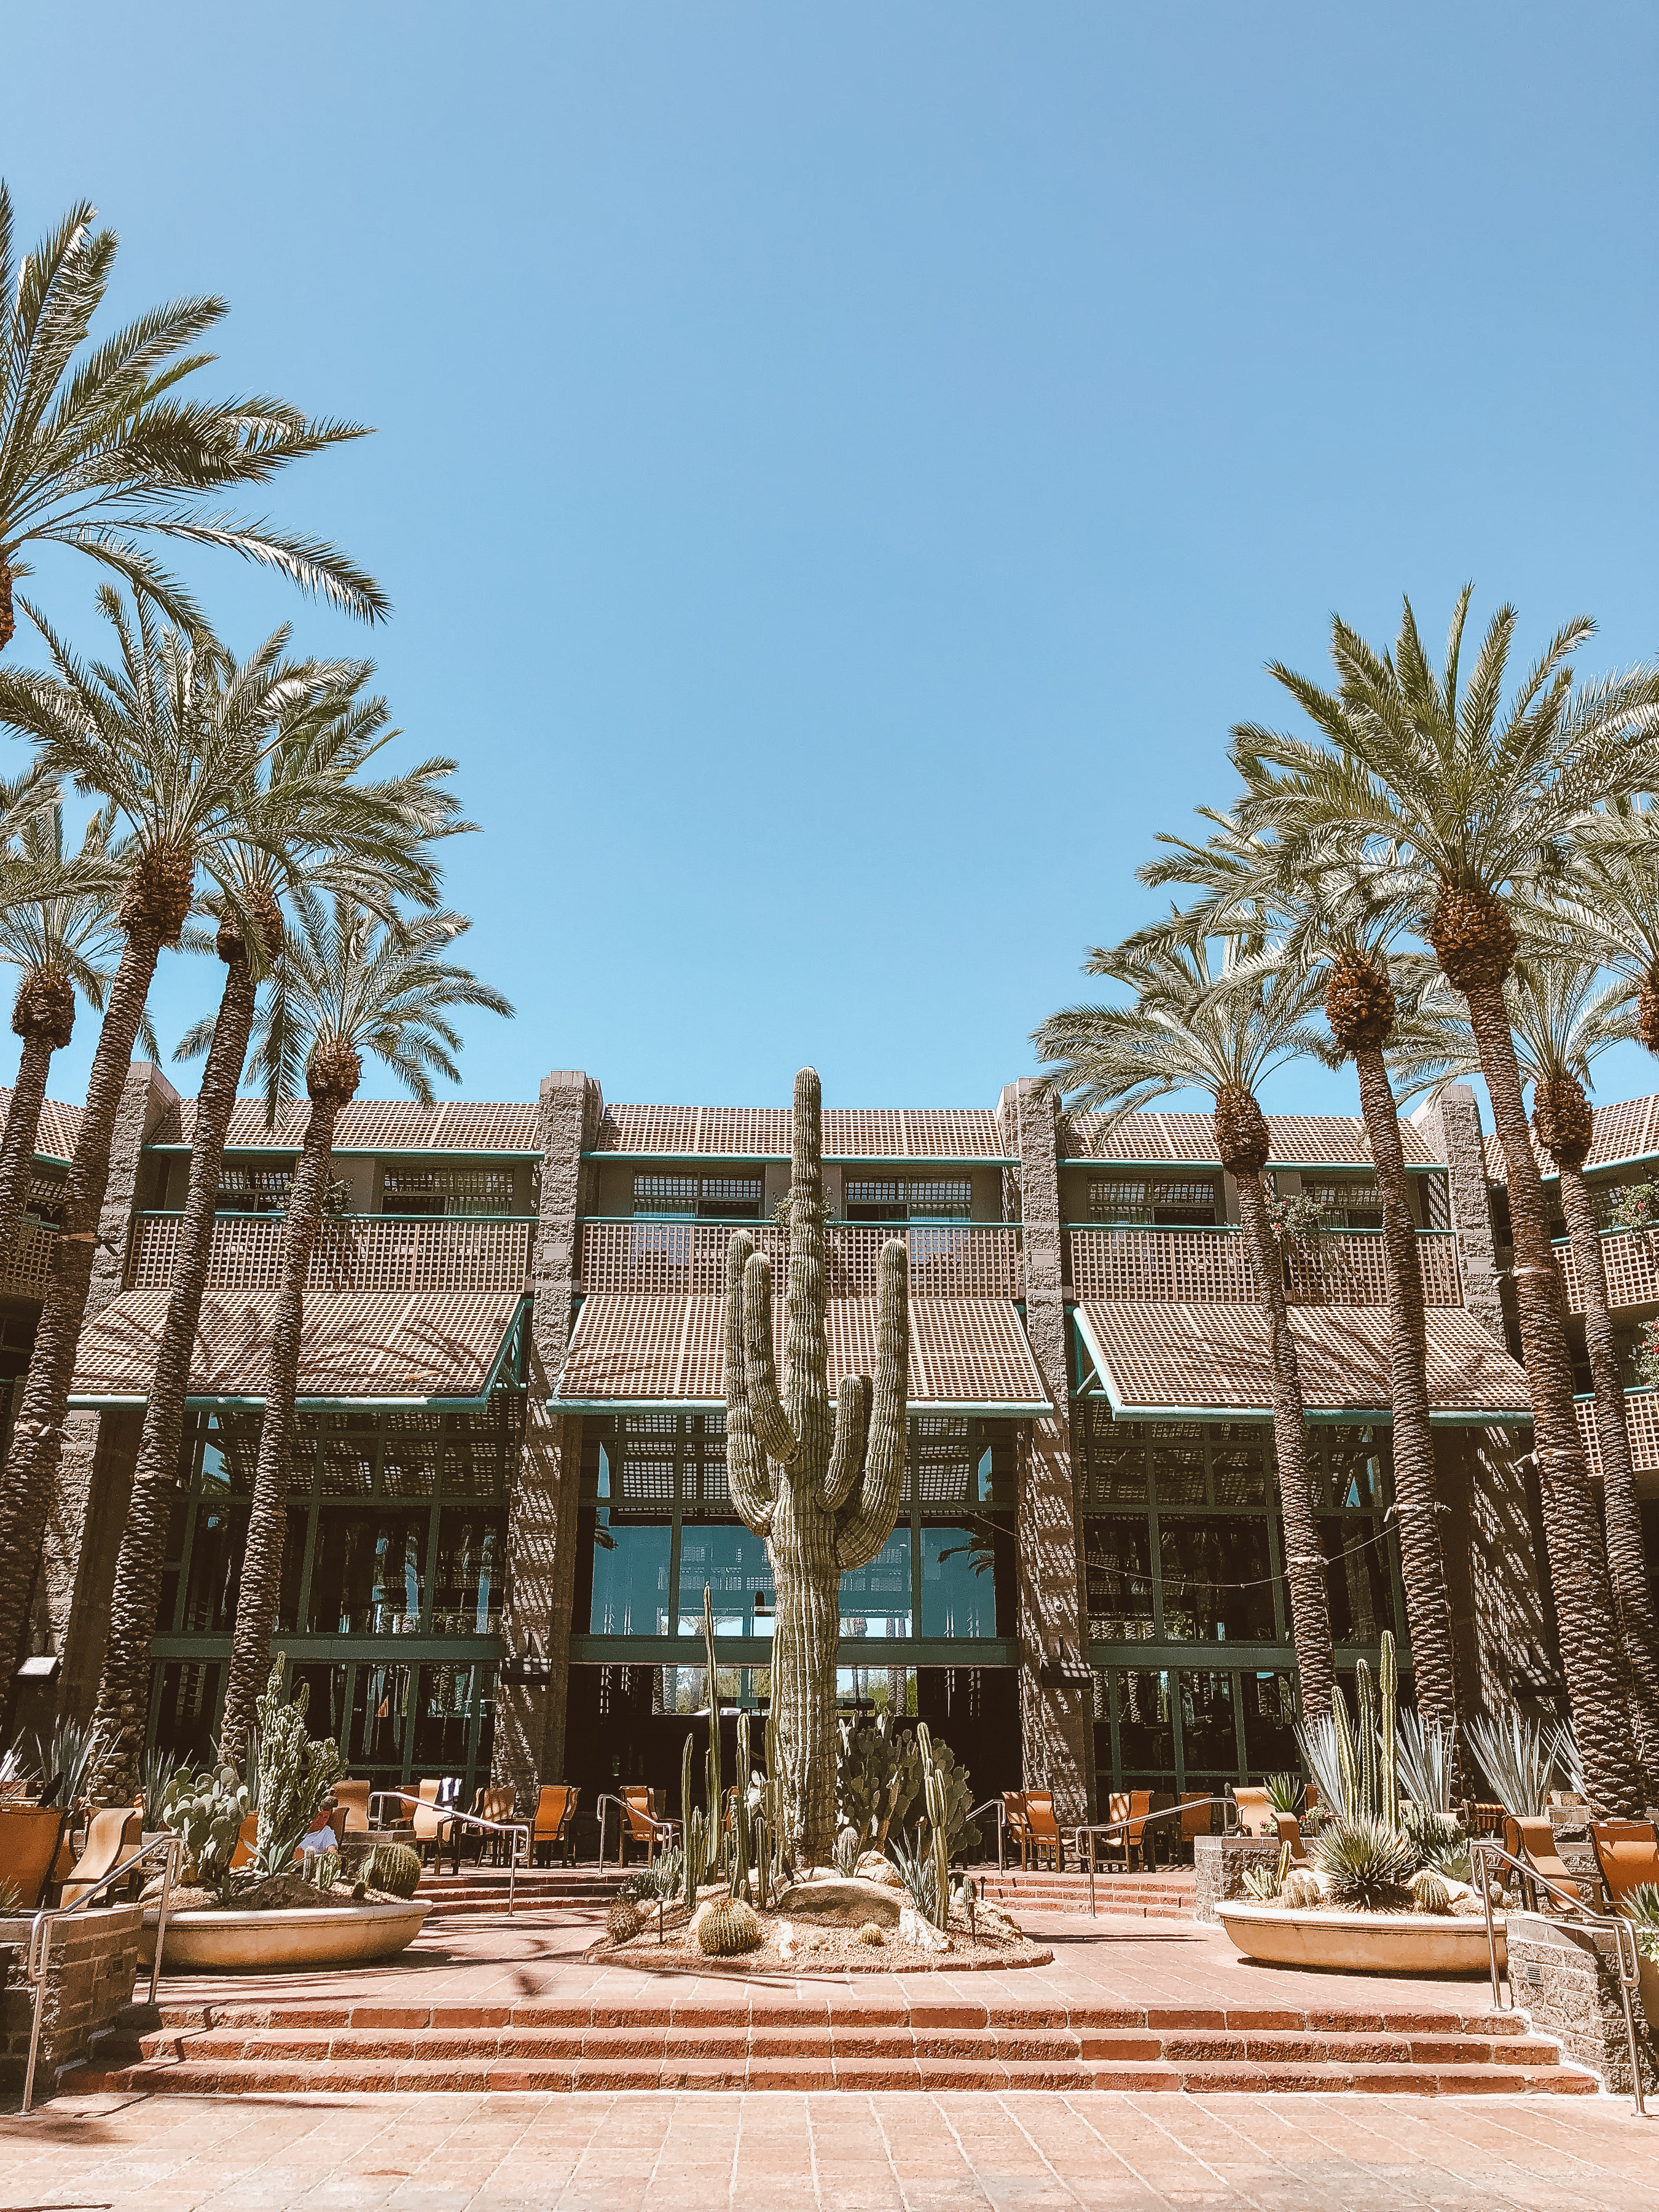 Houston lifestyle blogger Uptown with Elly Brown shares her Weekend Getaway to Scottsdale, Arizona and all the details on where to eat, stay and what to do! Click here for more!